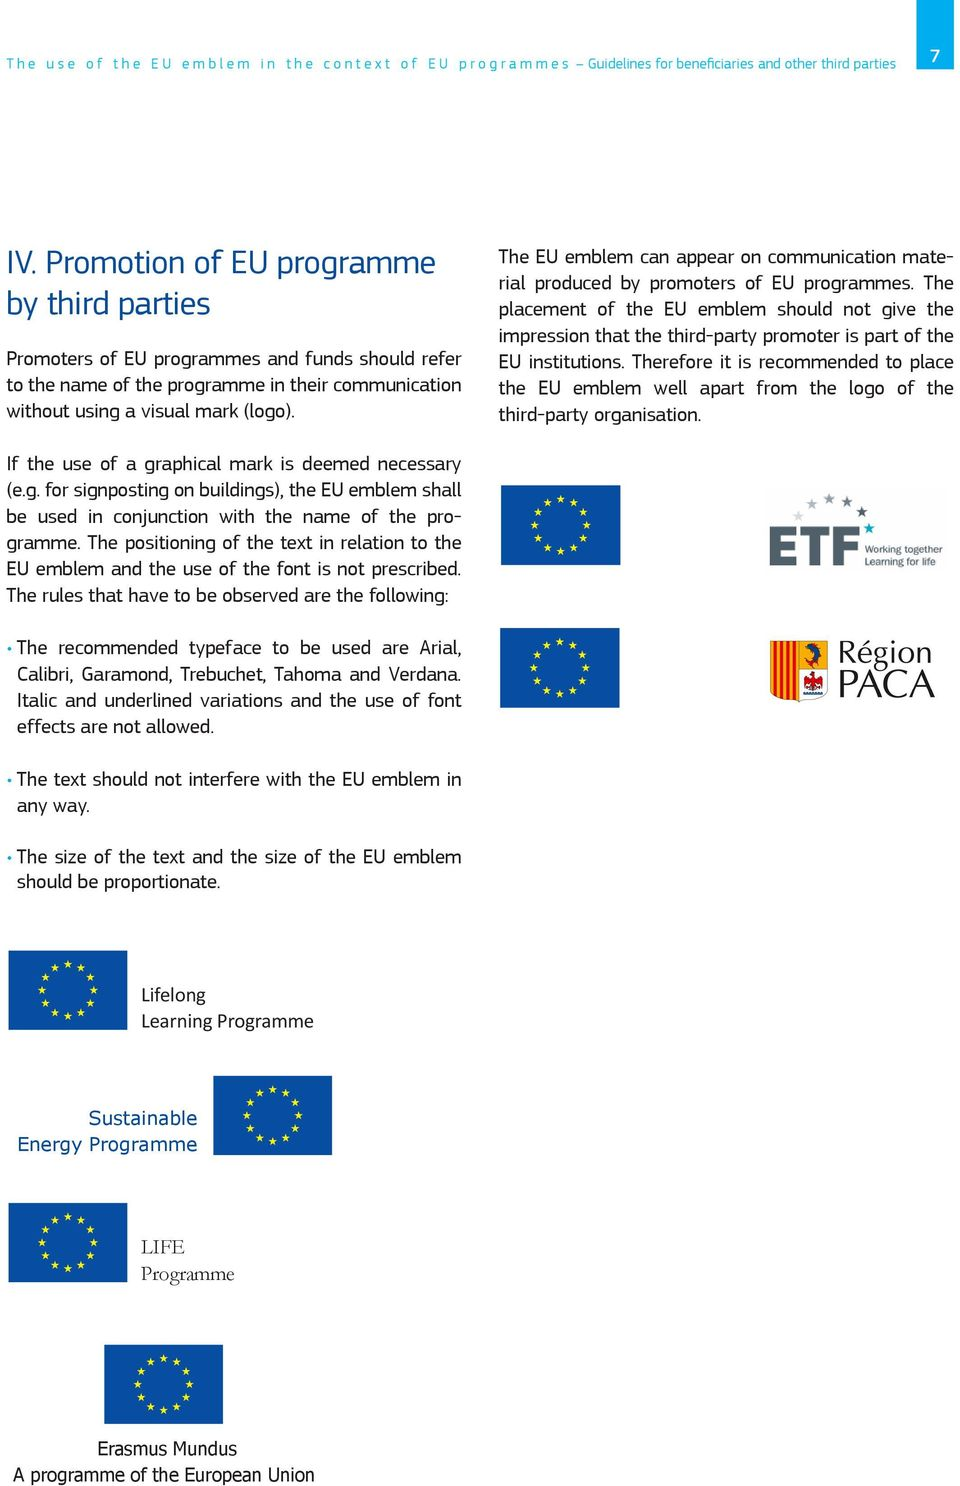 The EU emblem can appear on communication material produced by promoters of EU programmes.